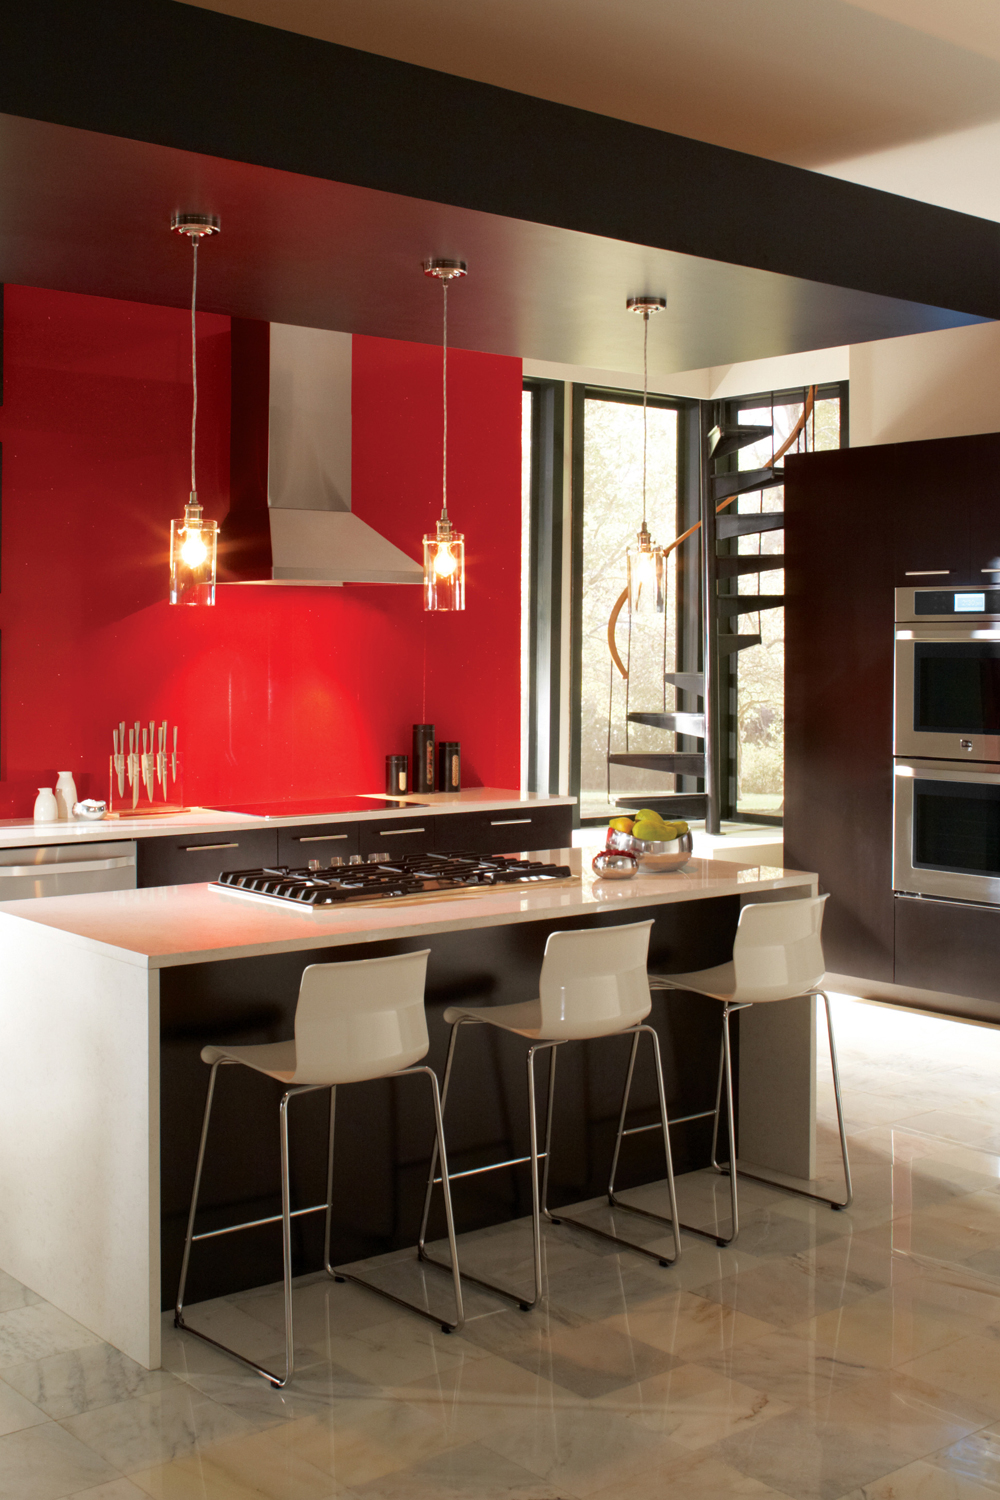 Tips For Kitchen Color Ideas: 8 Ways To Bring Color Into The Kitchen